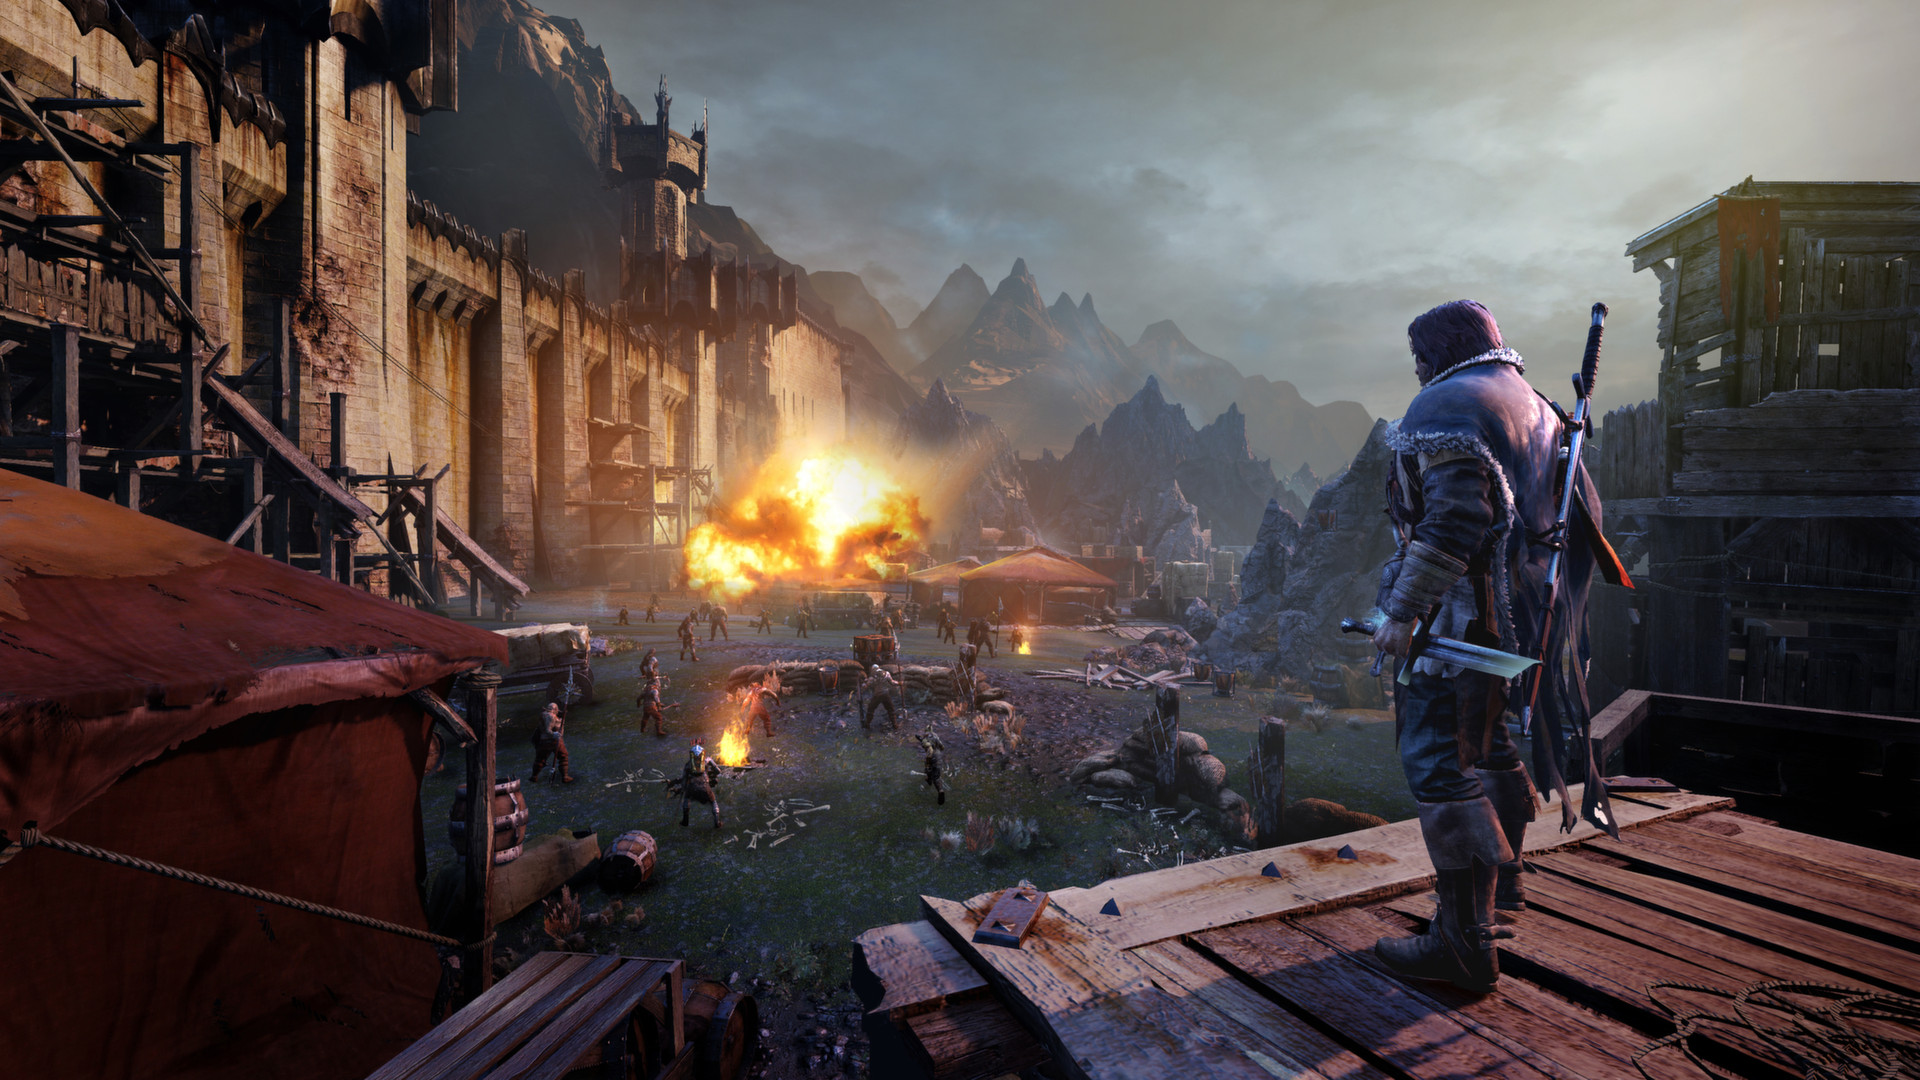 Middle-Earth: Shadow of Mordor gameplay screenshot